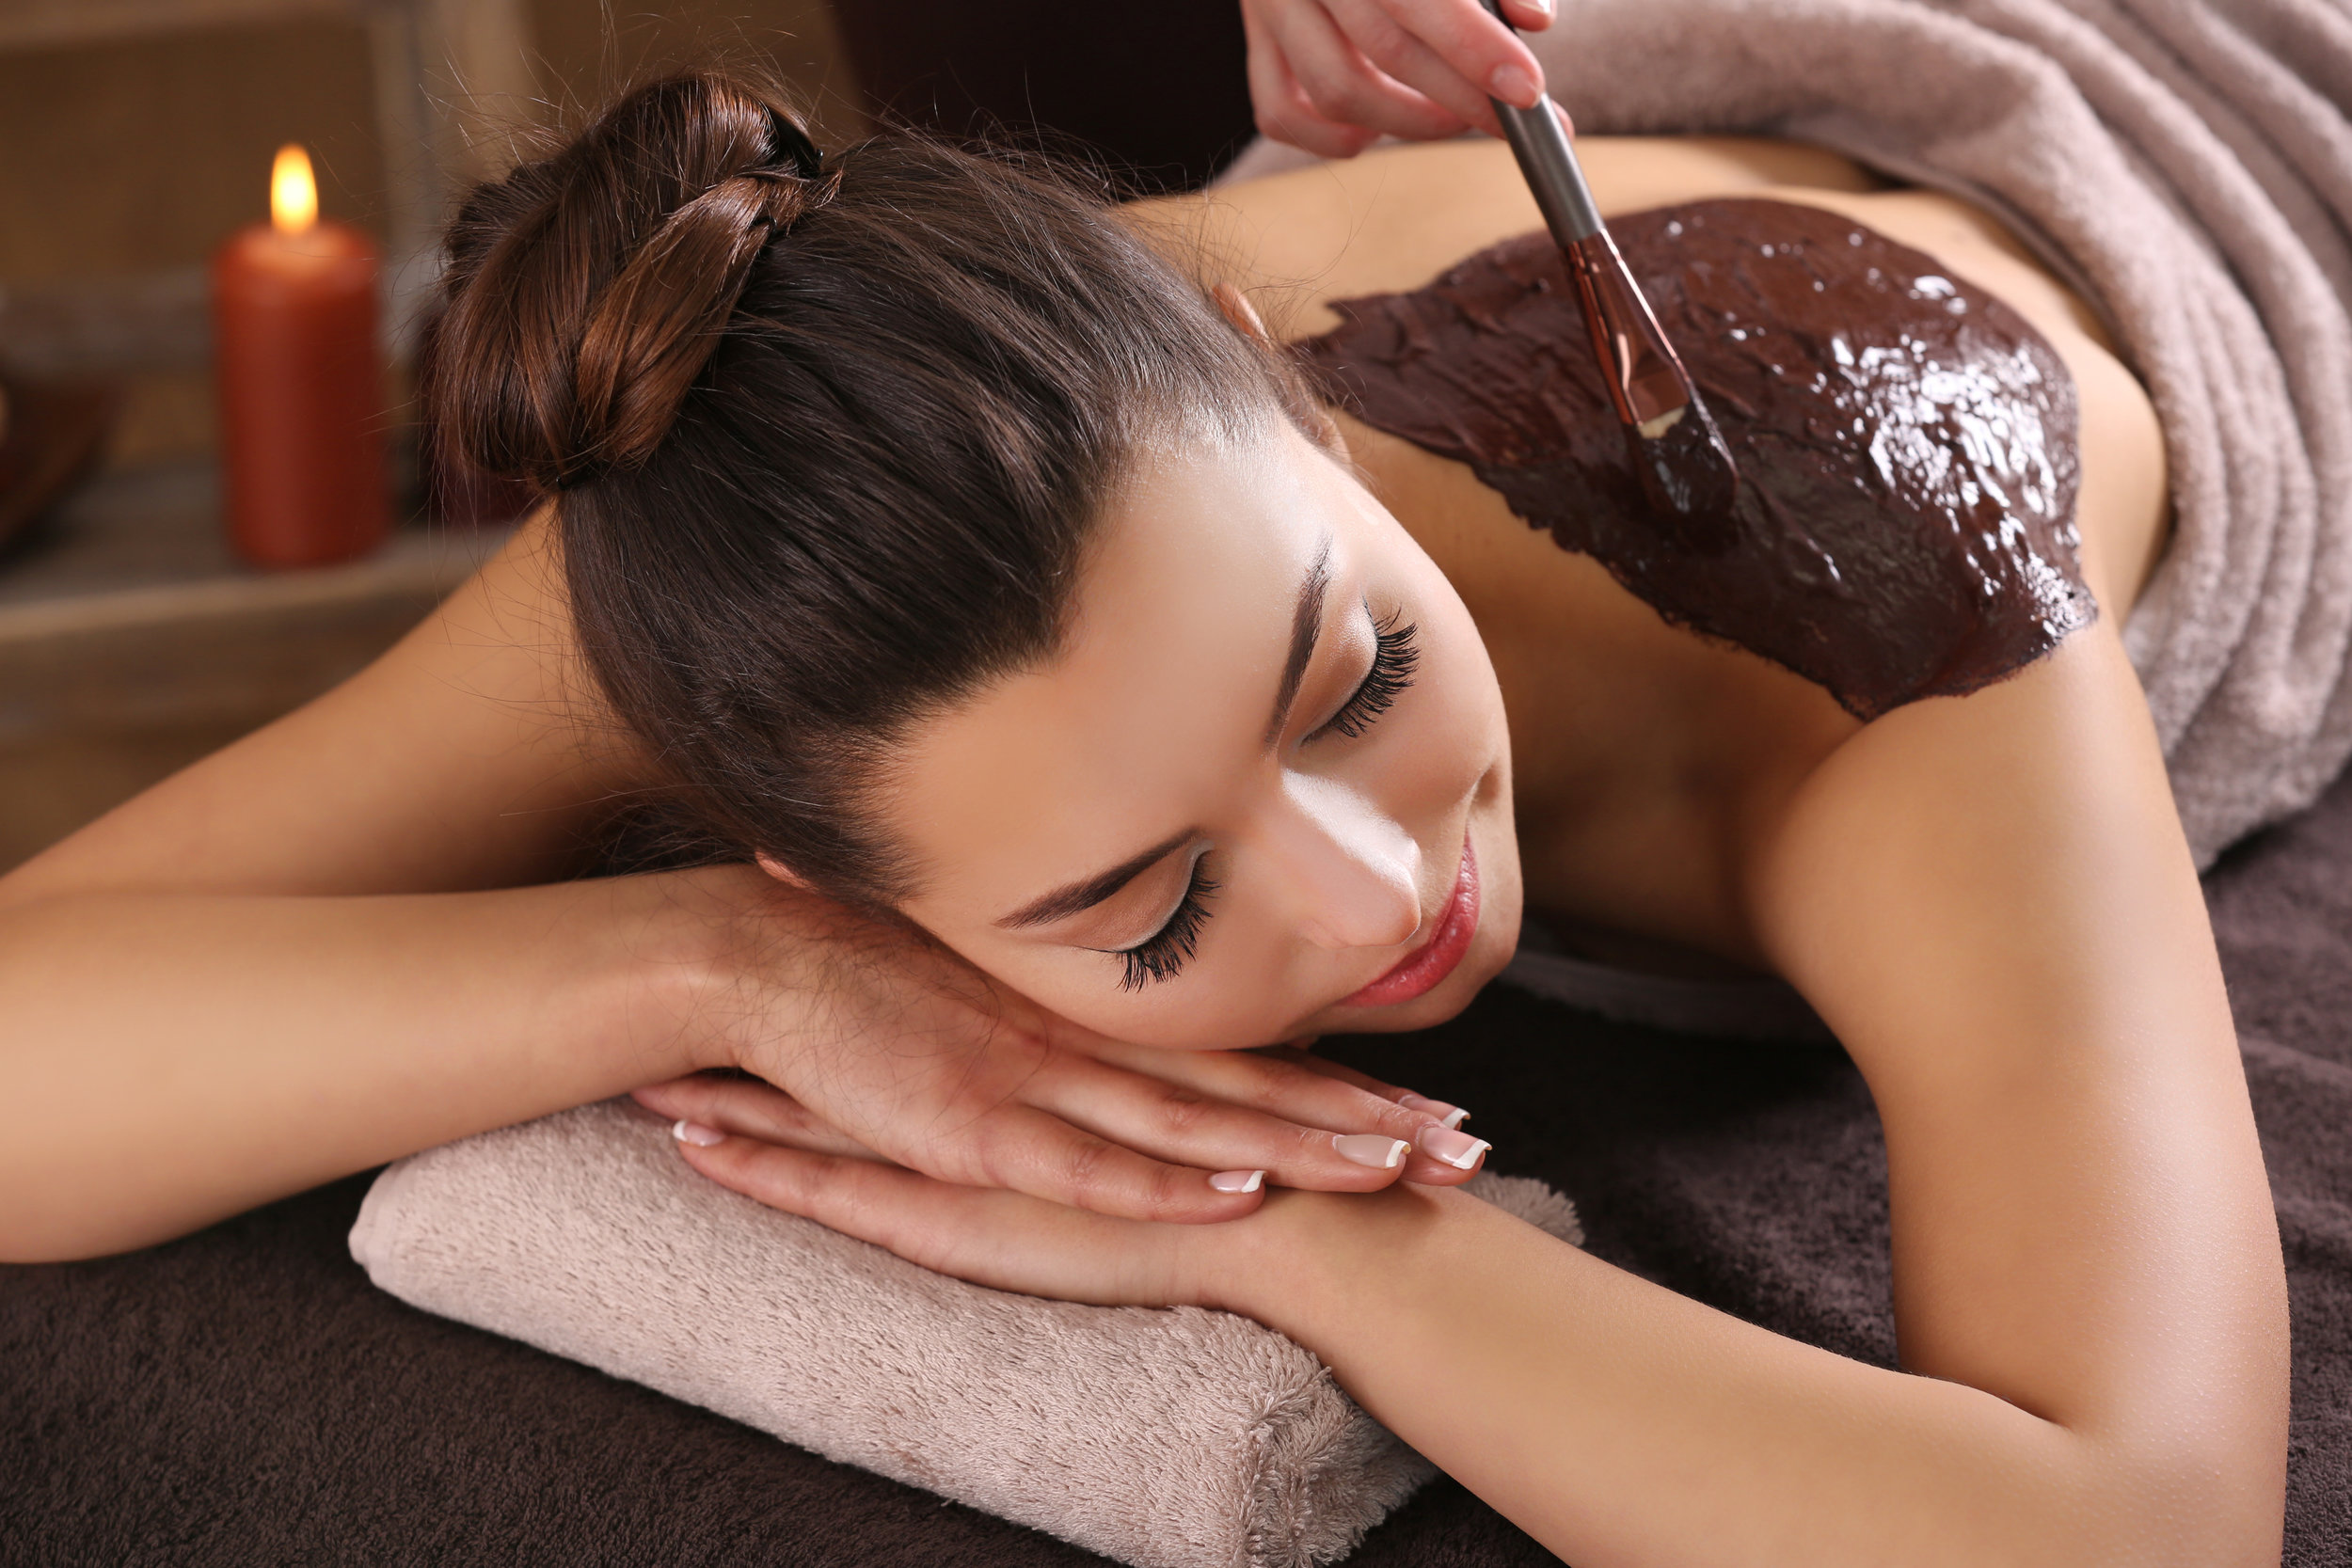 Body Therapy - Body brushing, salt scrubs and mineral mud to clear and hydrate your skin, leaving it smooth and soft.